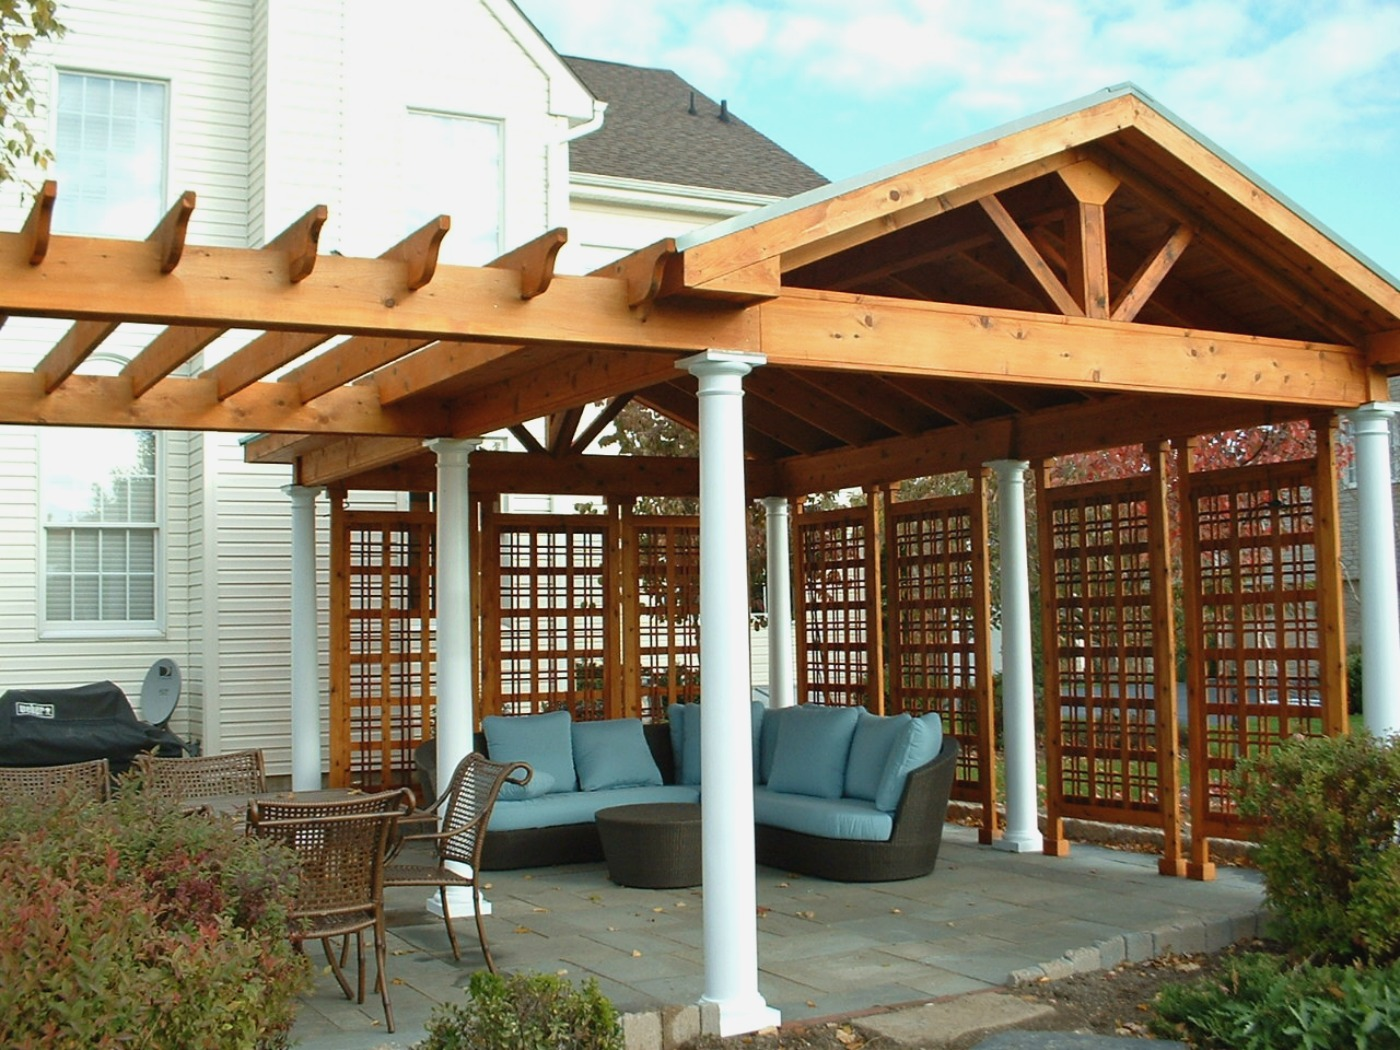 Covered Patio by Archadeck -- Pergola and Roof Structure - How To Cover Your Deck, Patio Or Porch For Any Price By Archadeck